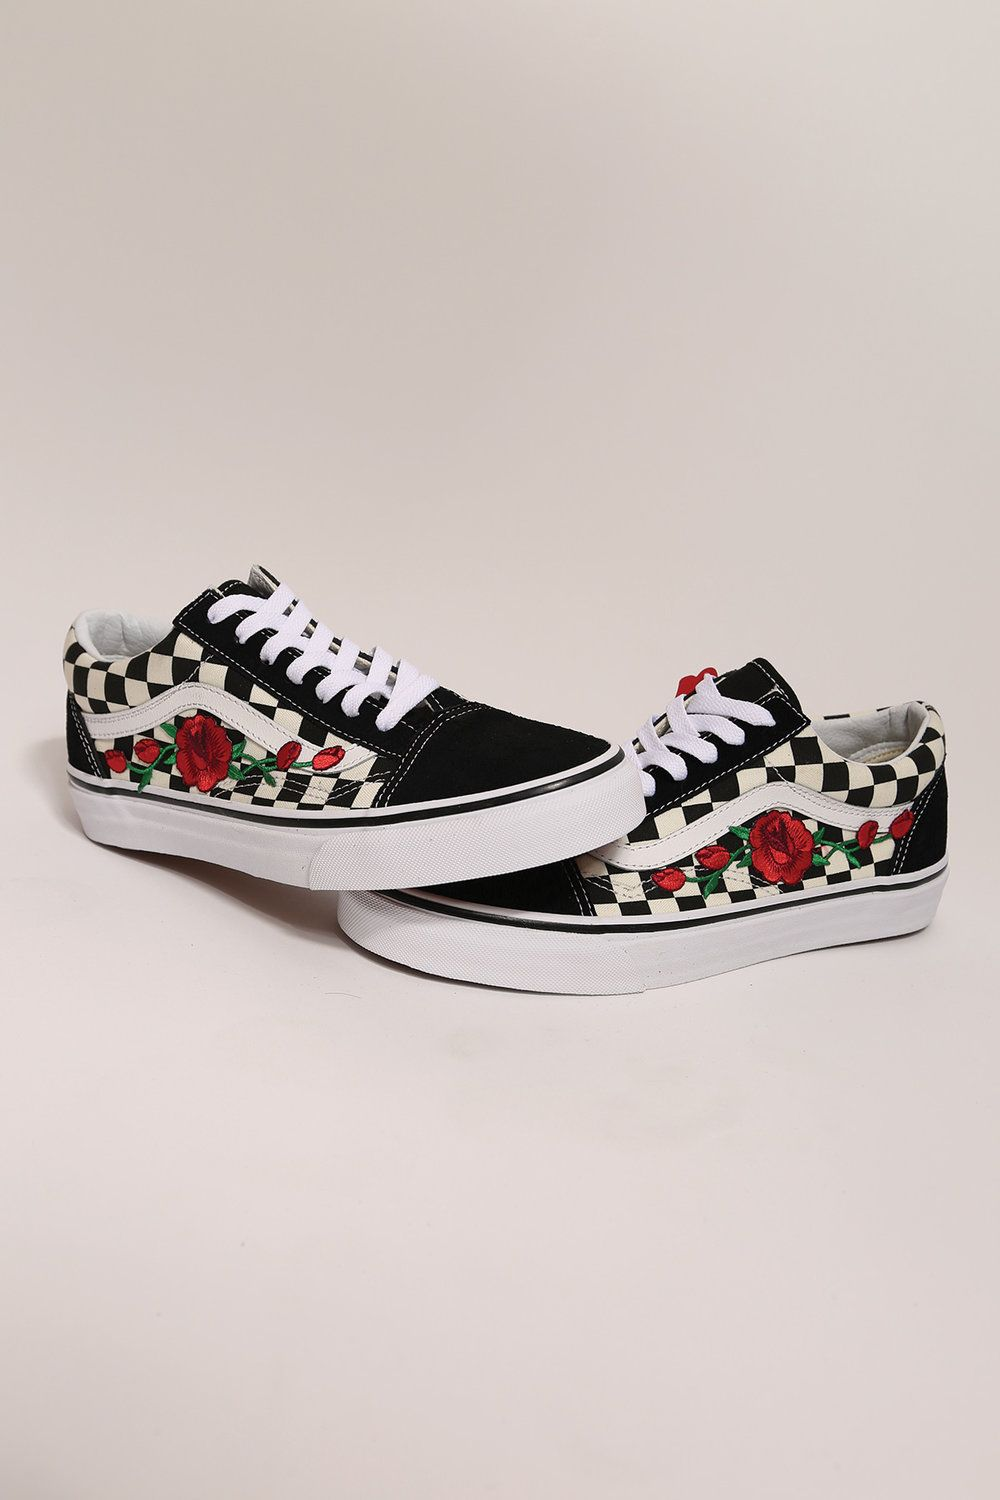 Custom Rose Vans Checkered Old Skool Low Top At Giftryapp I Love